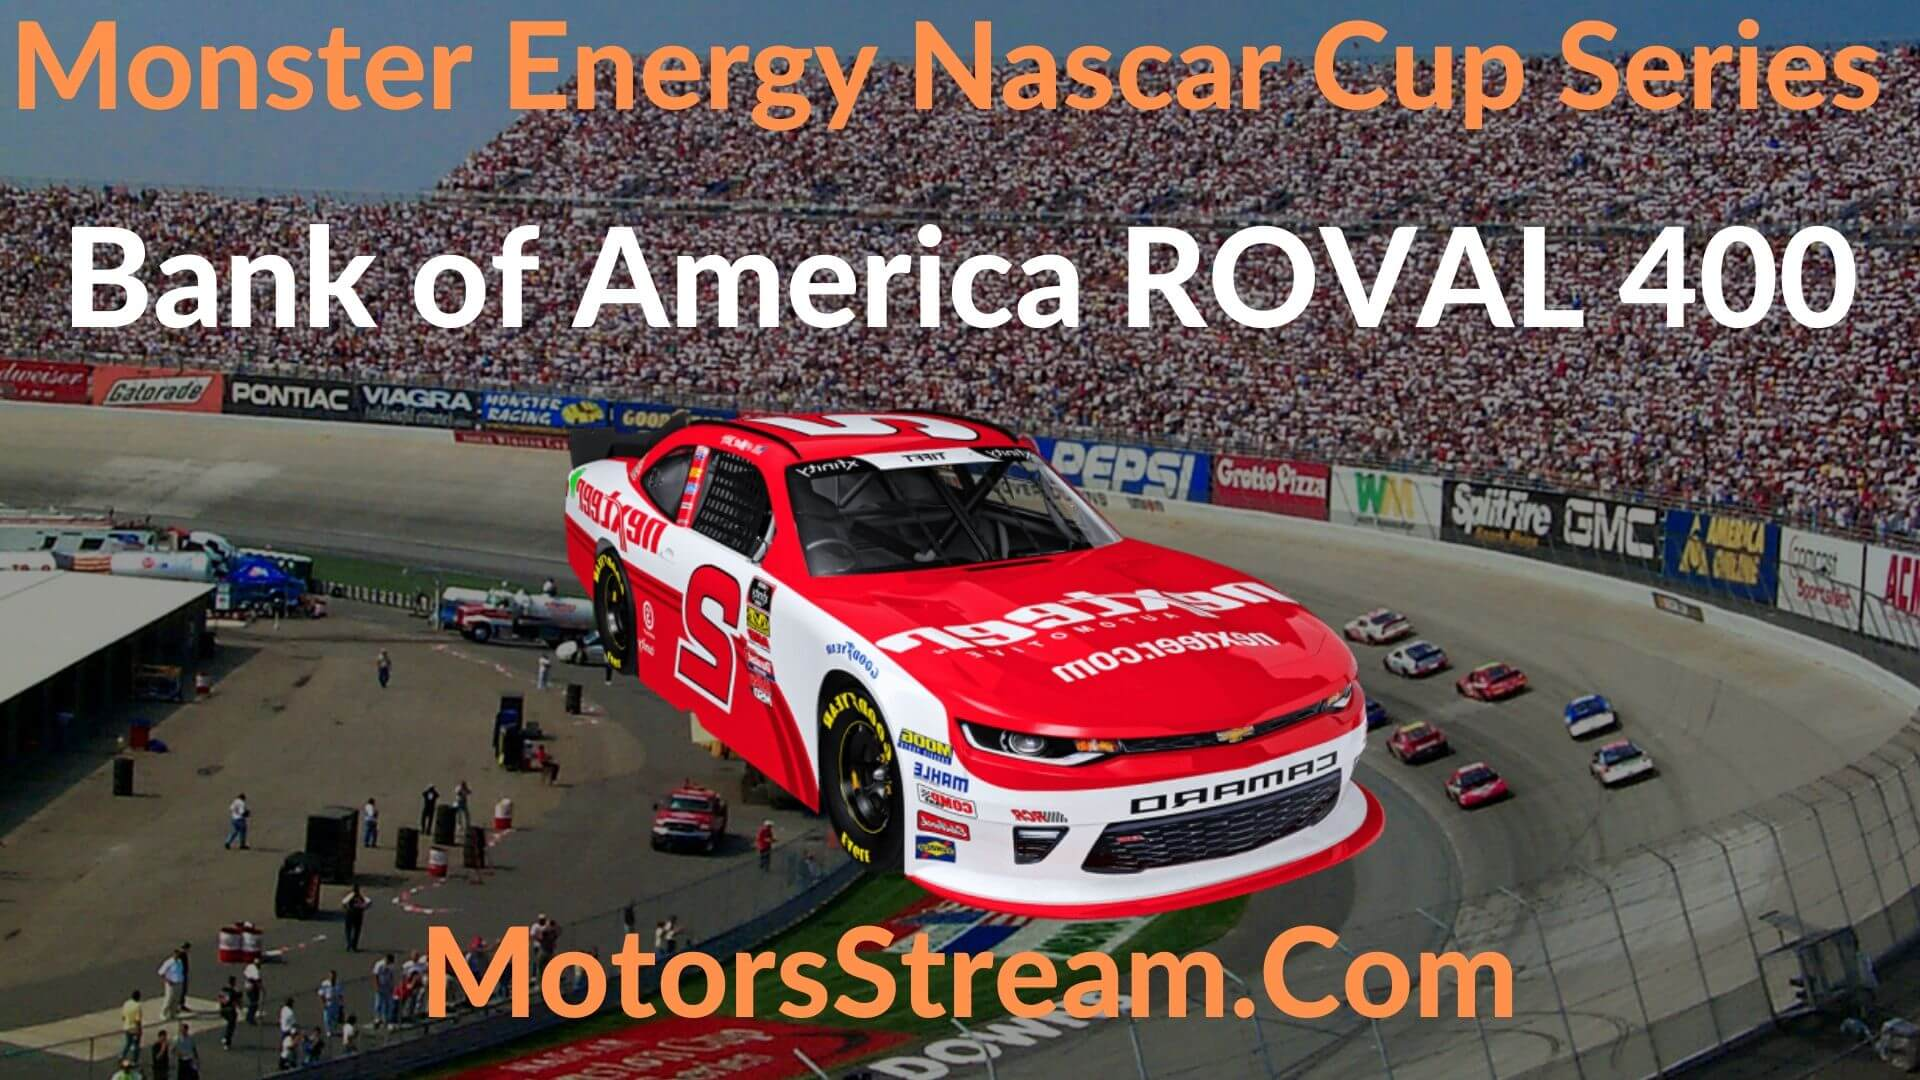 Bank of America ROVAL 400 Live Stream | NASCAR CUP 2020